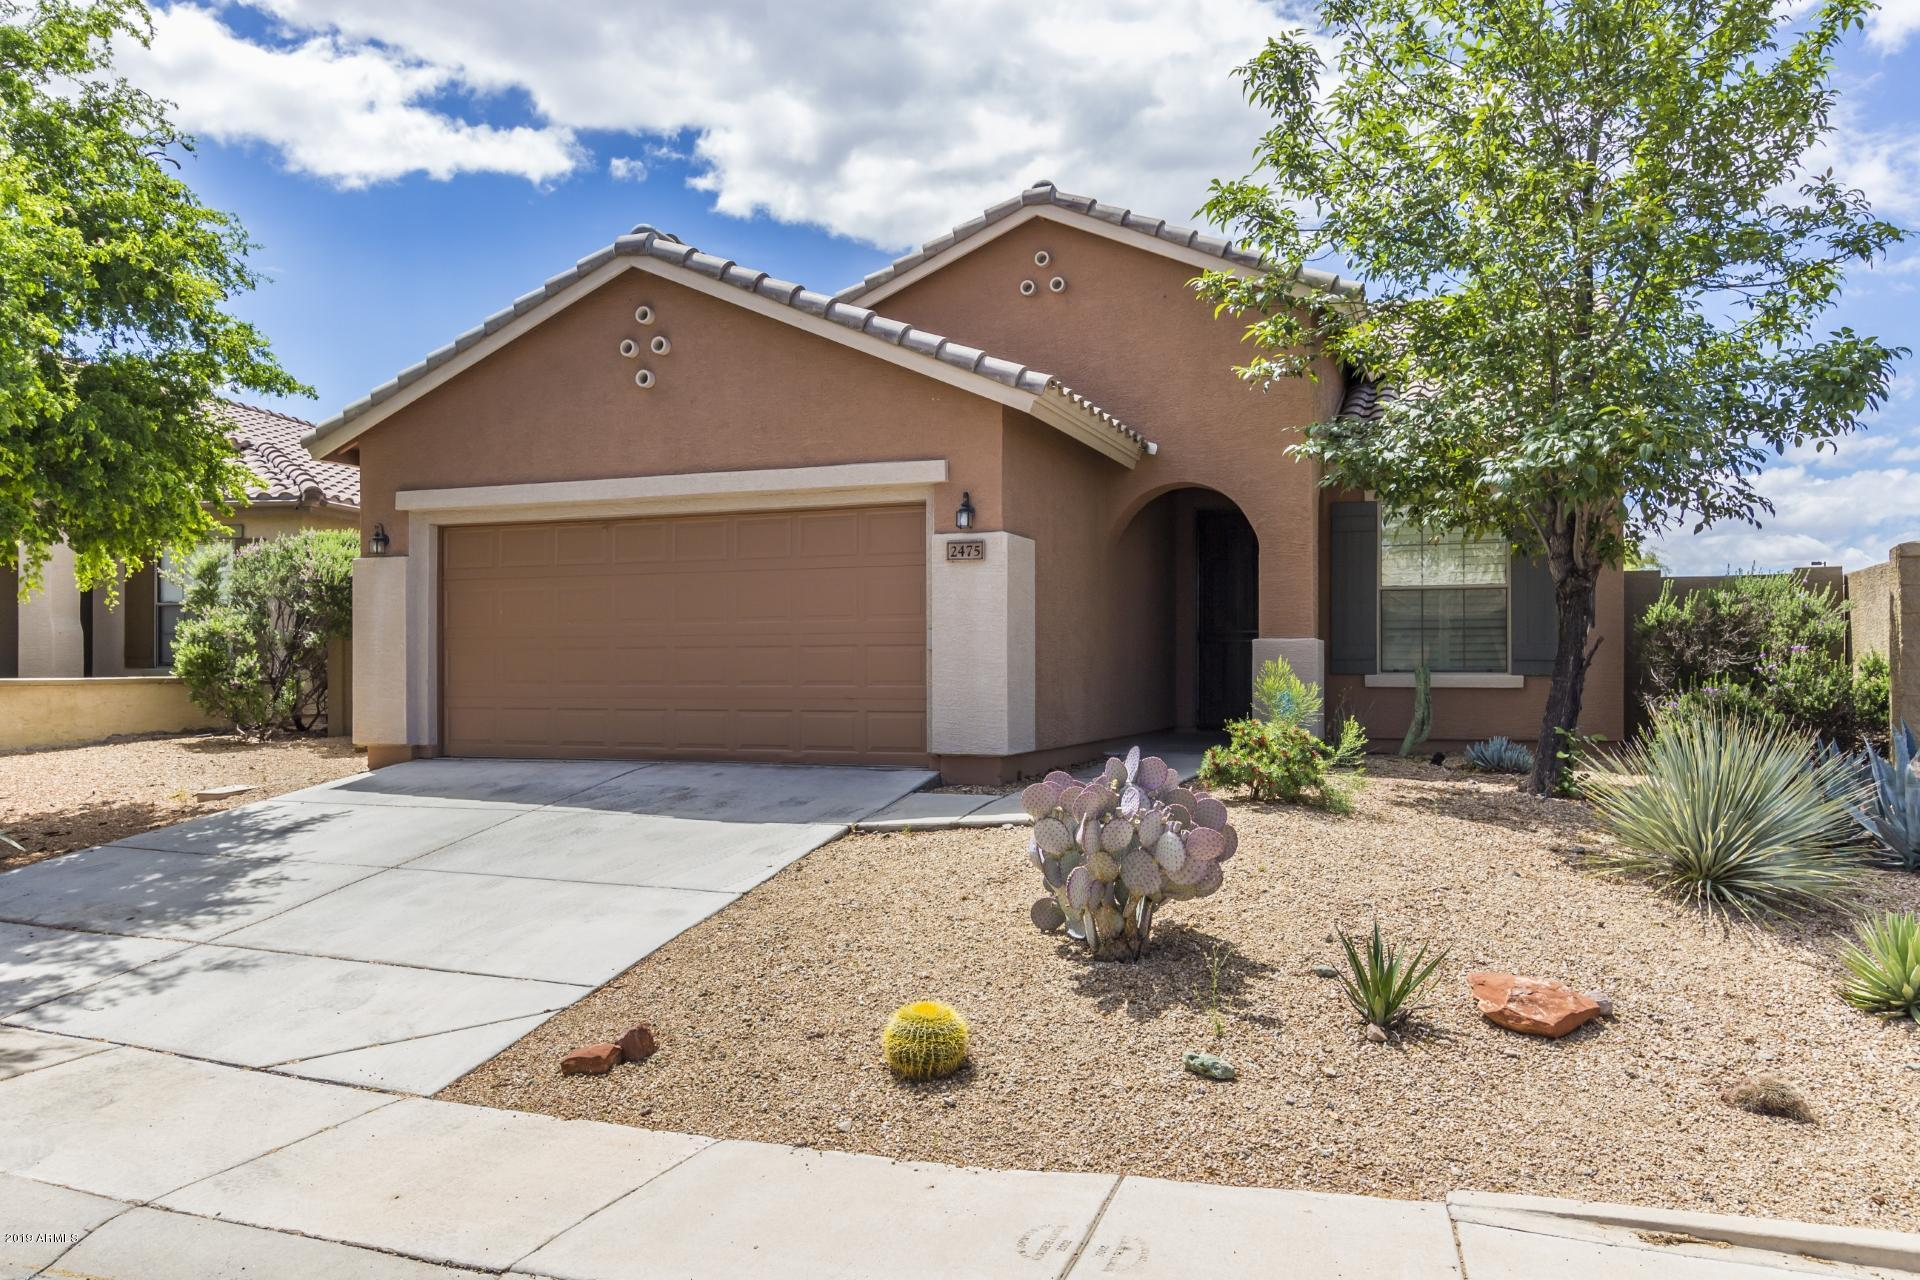 2475 W LEWIS AND CLARK Trail, Anthem in Maricopa County, AZ 85086 Home for Sale